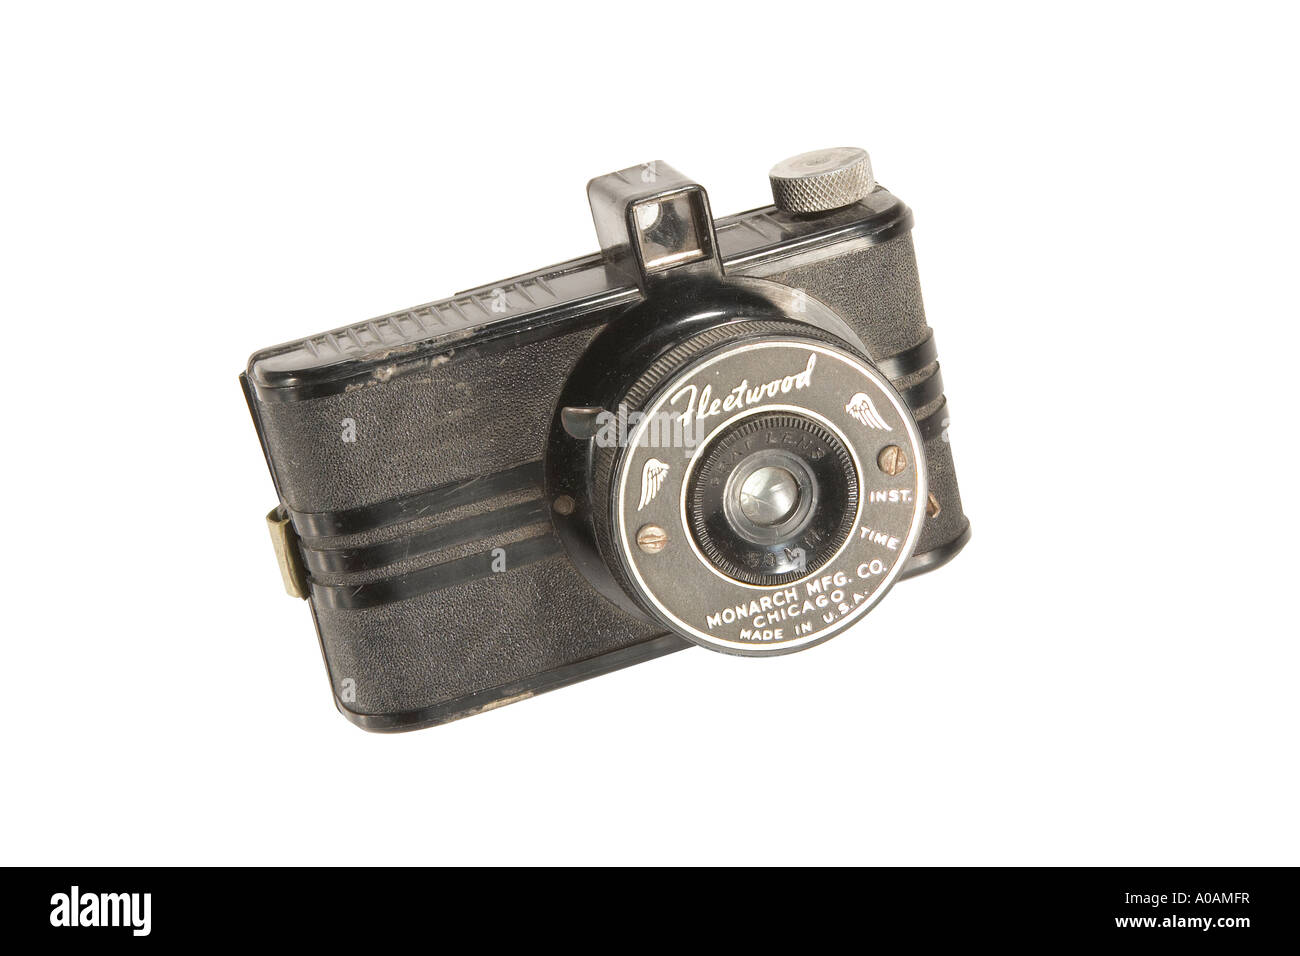 Old miniature camera with clipping path - Stock Image